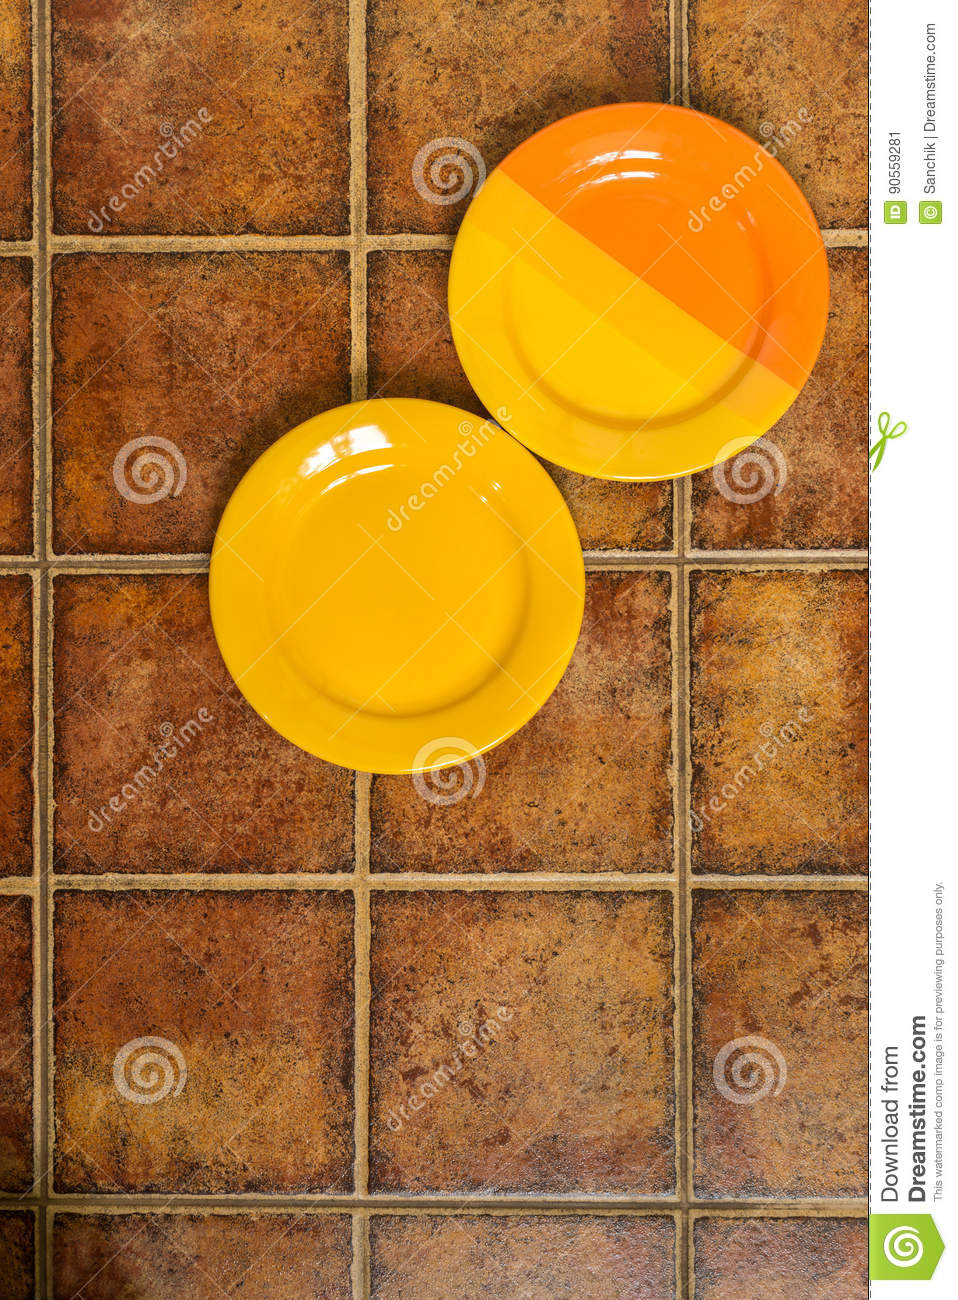 Two Multi-colored Plates In A Corner On A Brown Background Stock ...